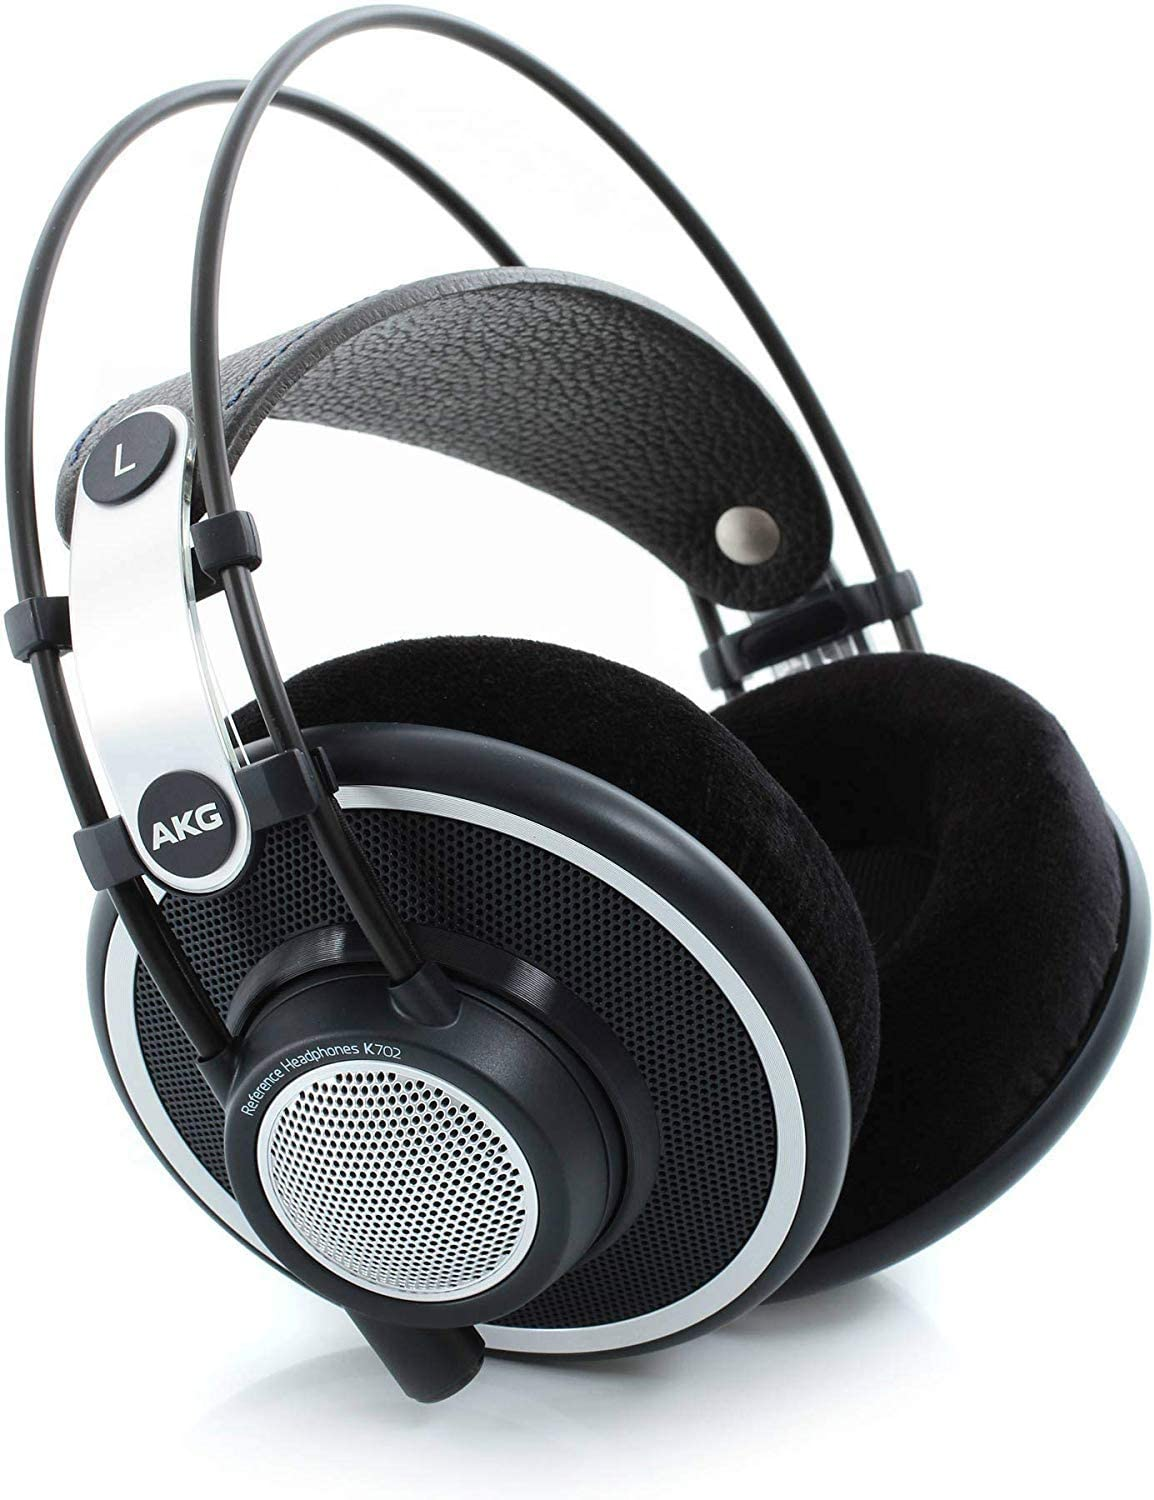 10 Best Headphones For Classical Music Lover's Like Me 8